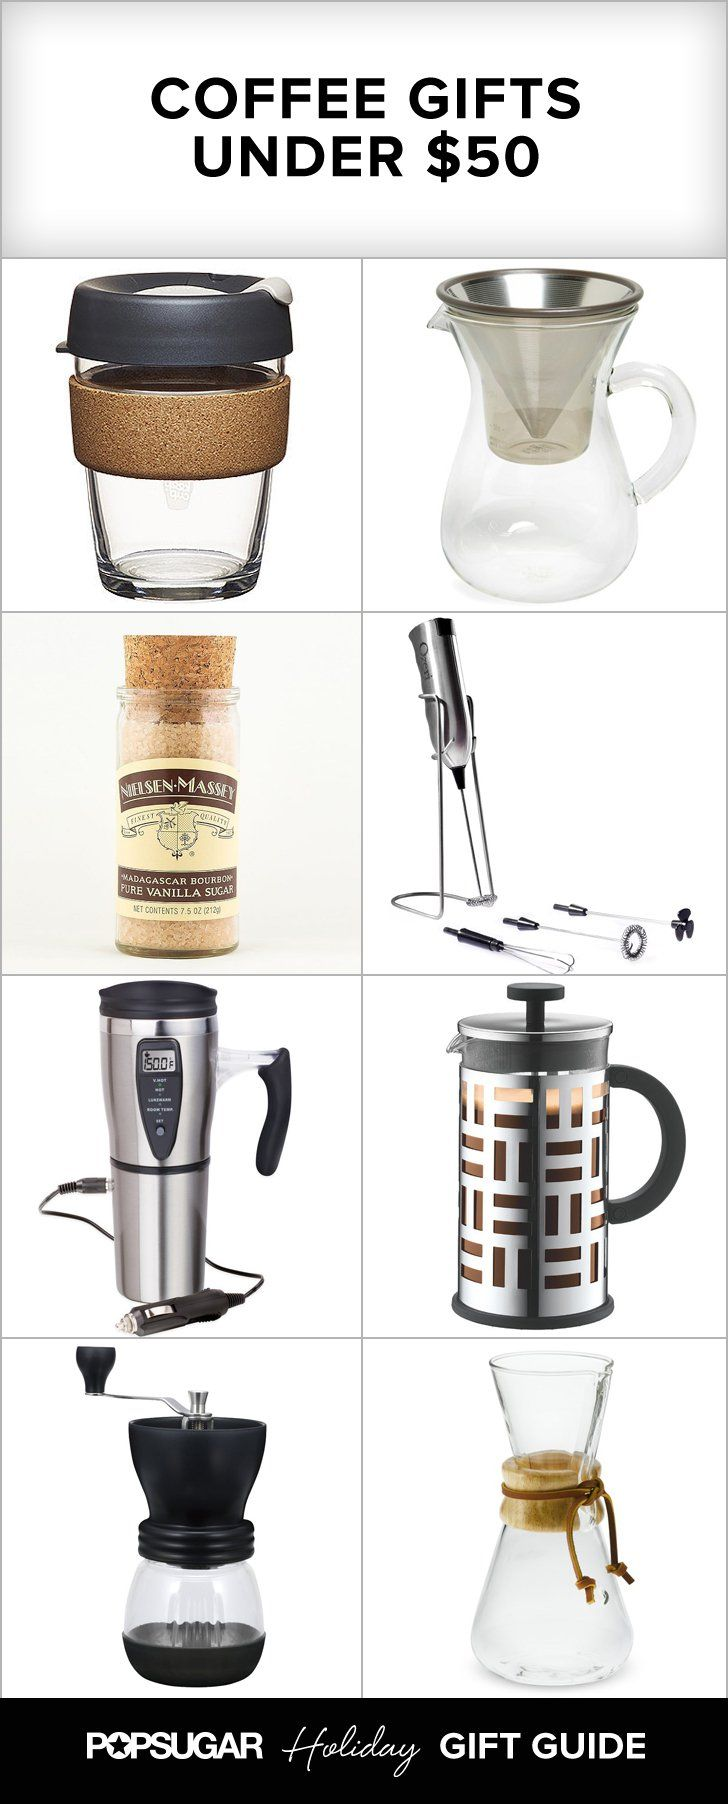 Fresh Gift Ideas For Coffee-Lovers Under $60